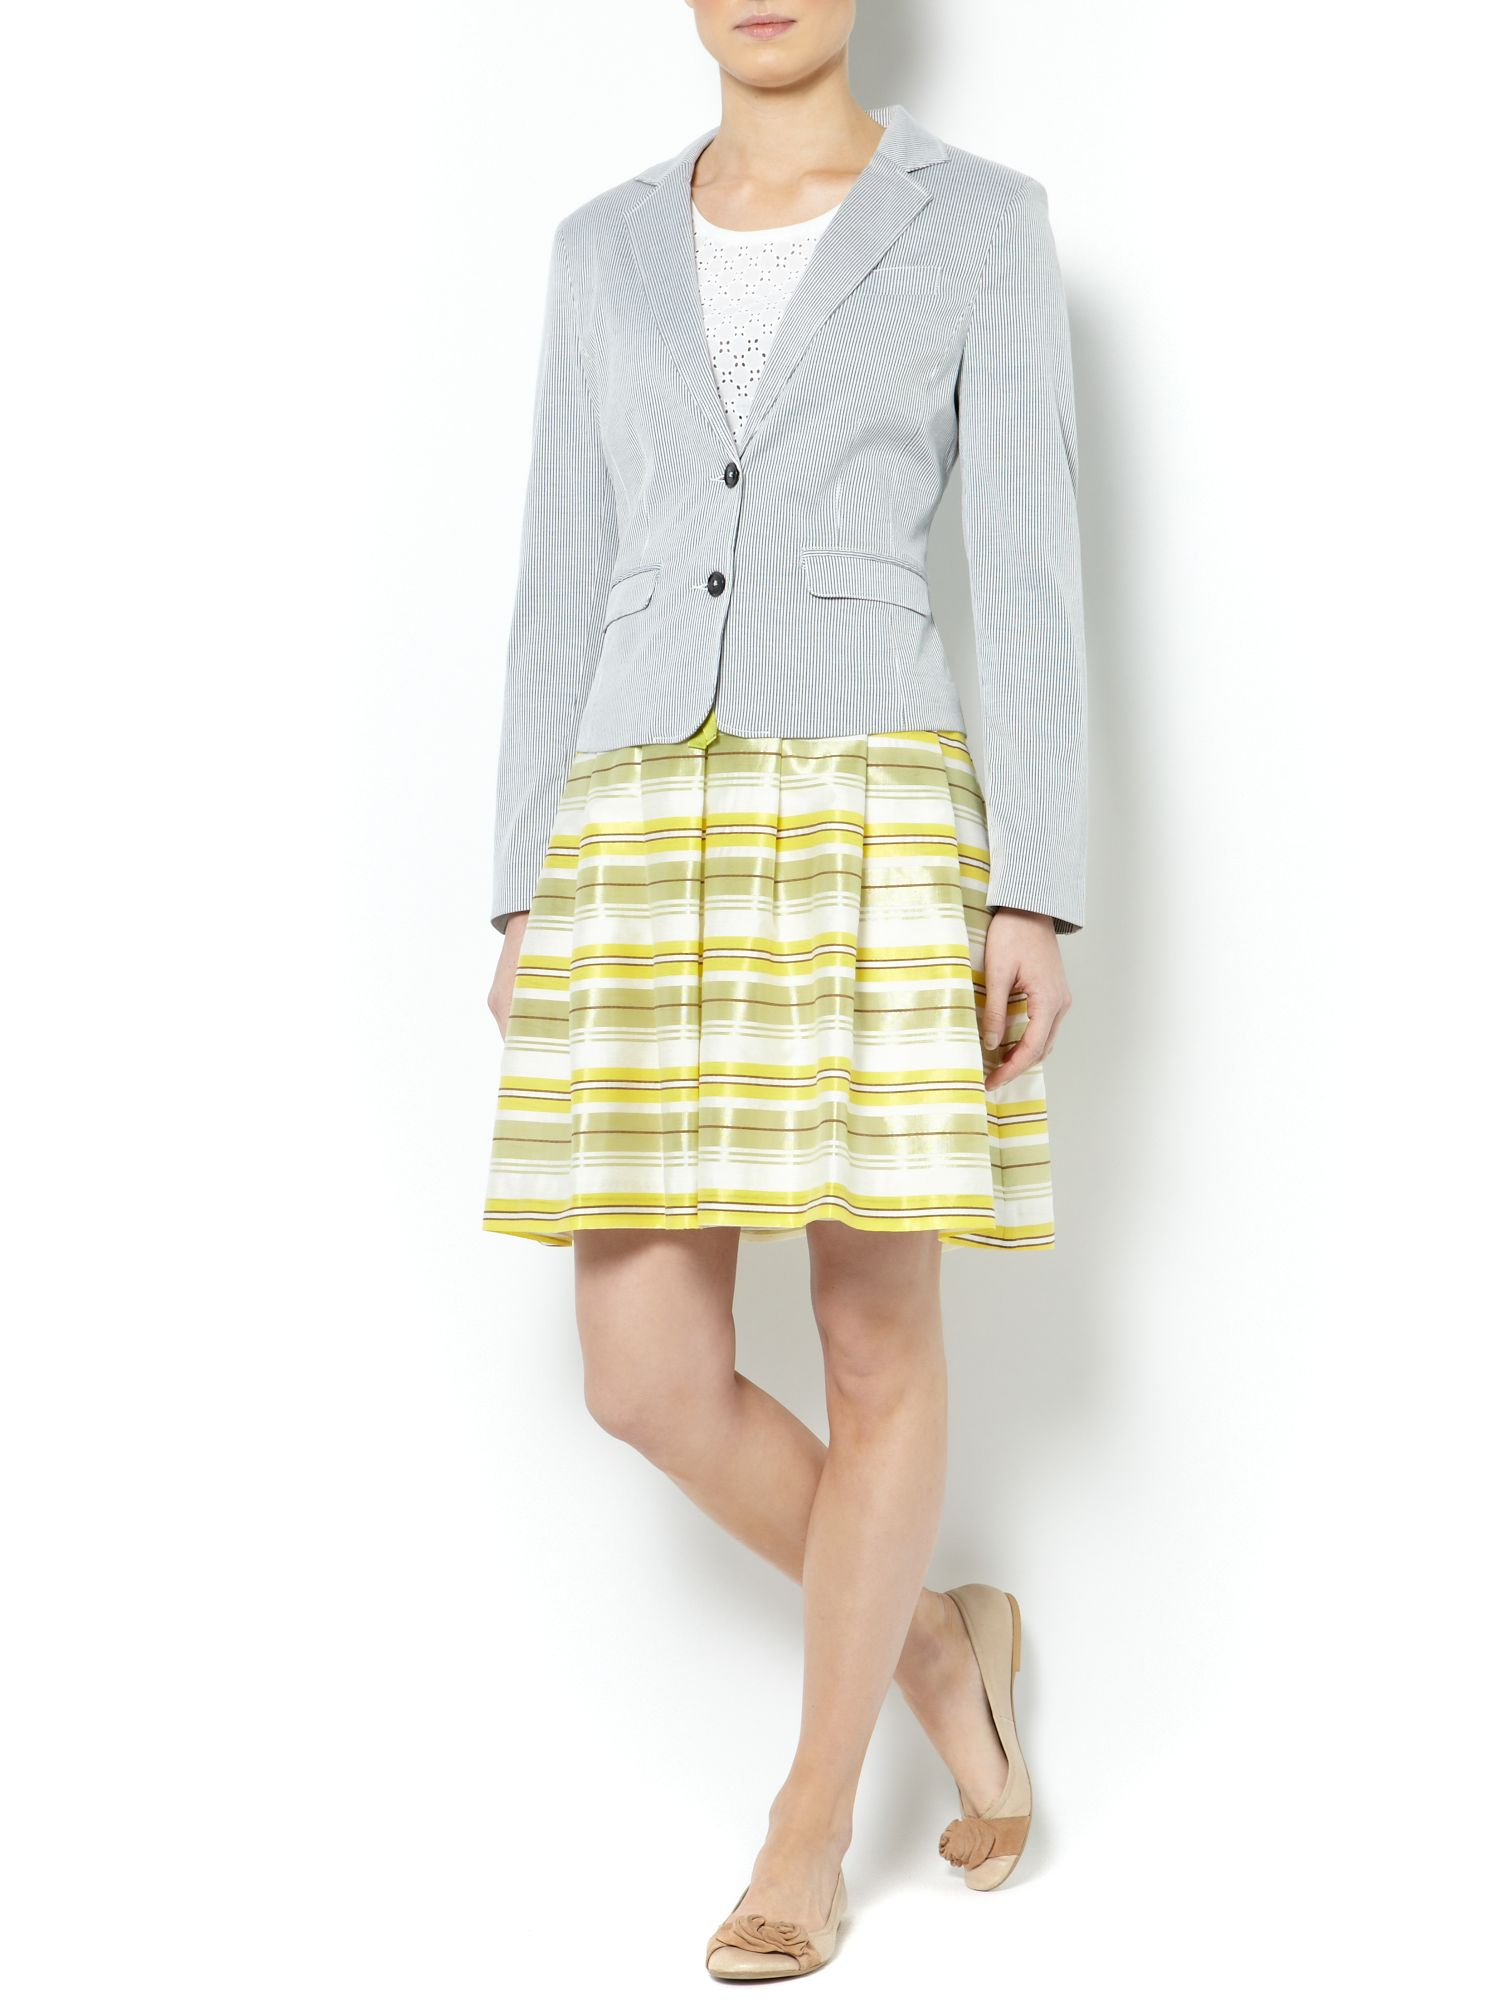 Ladies pinstripe blazer